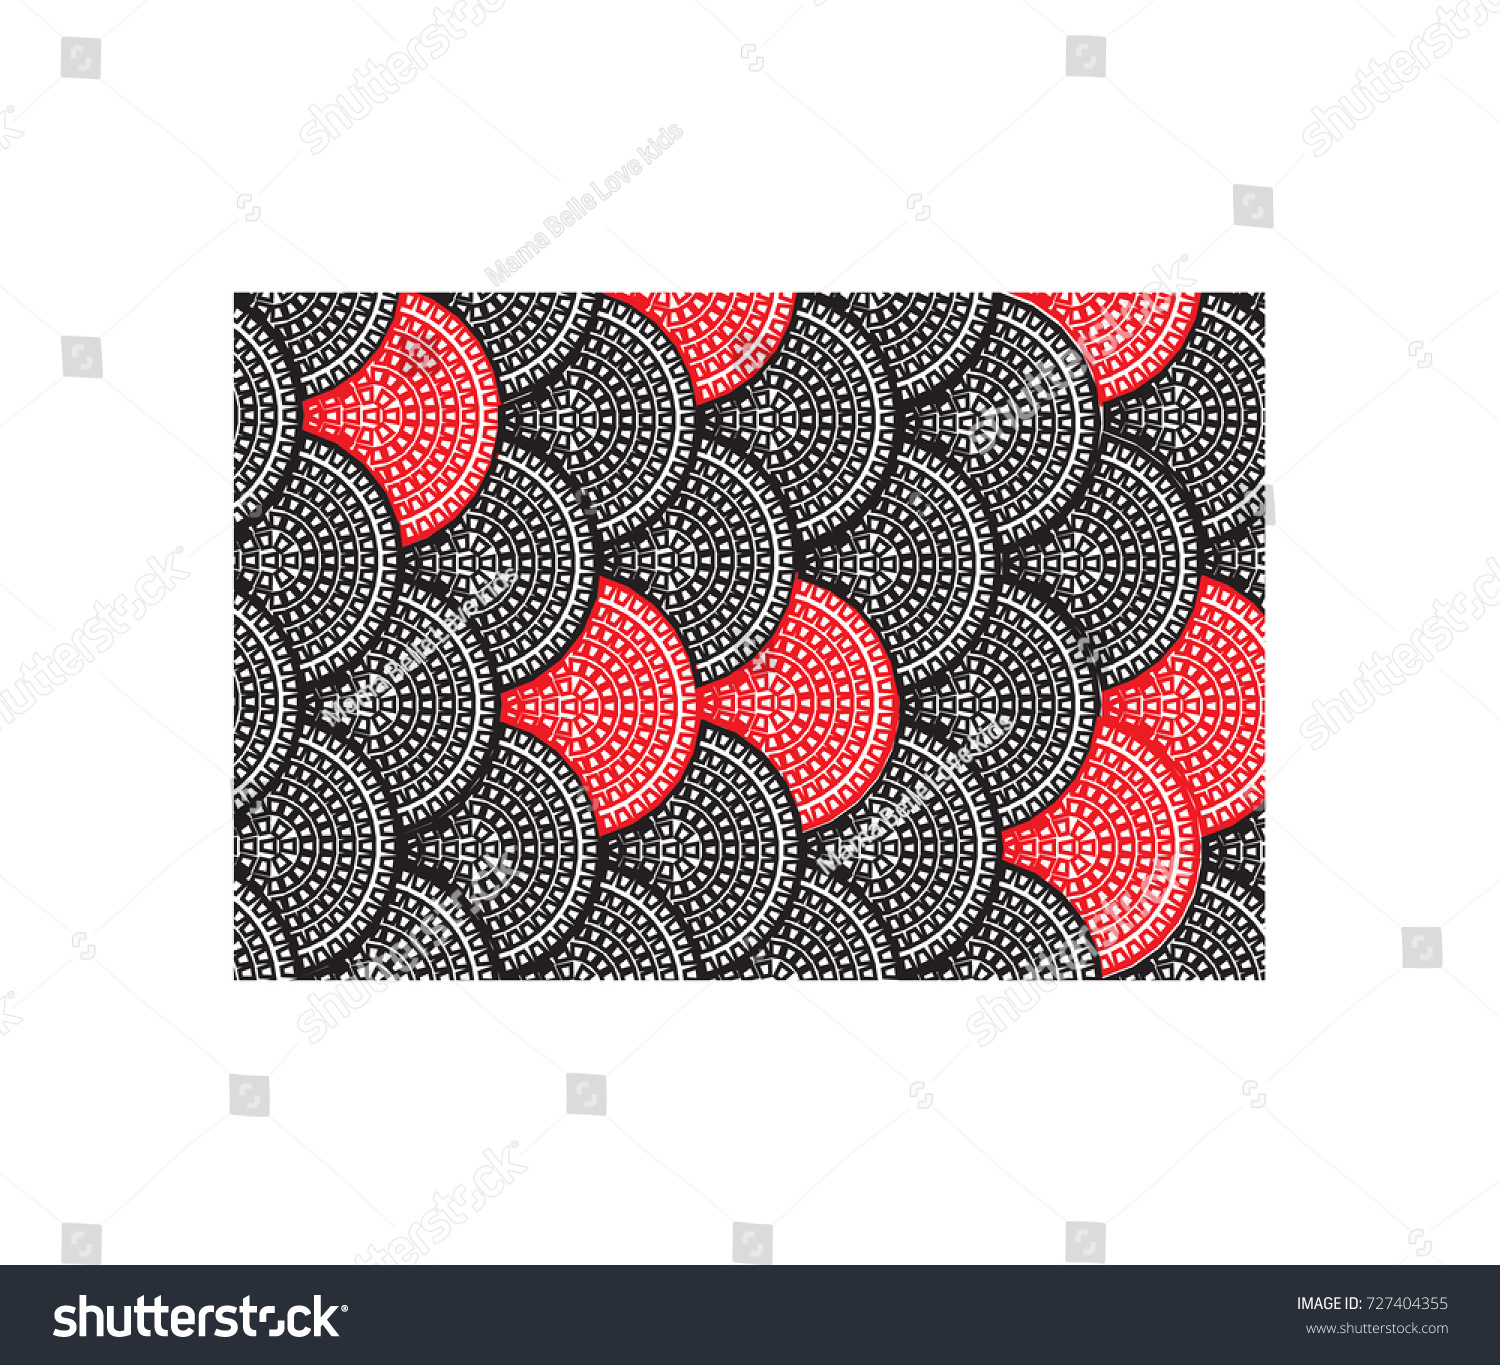 Doodles Image Fish Scale Black Red Stock Illustration 727404355 ...